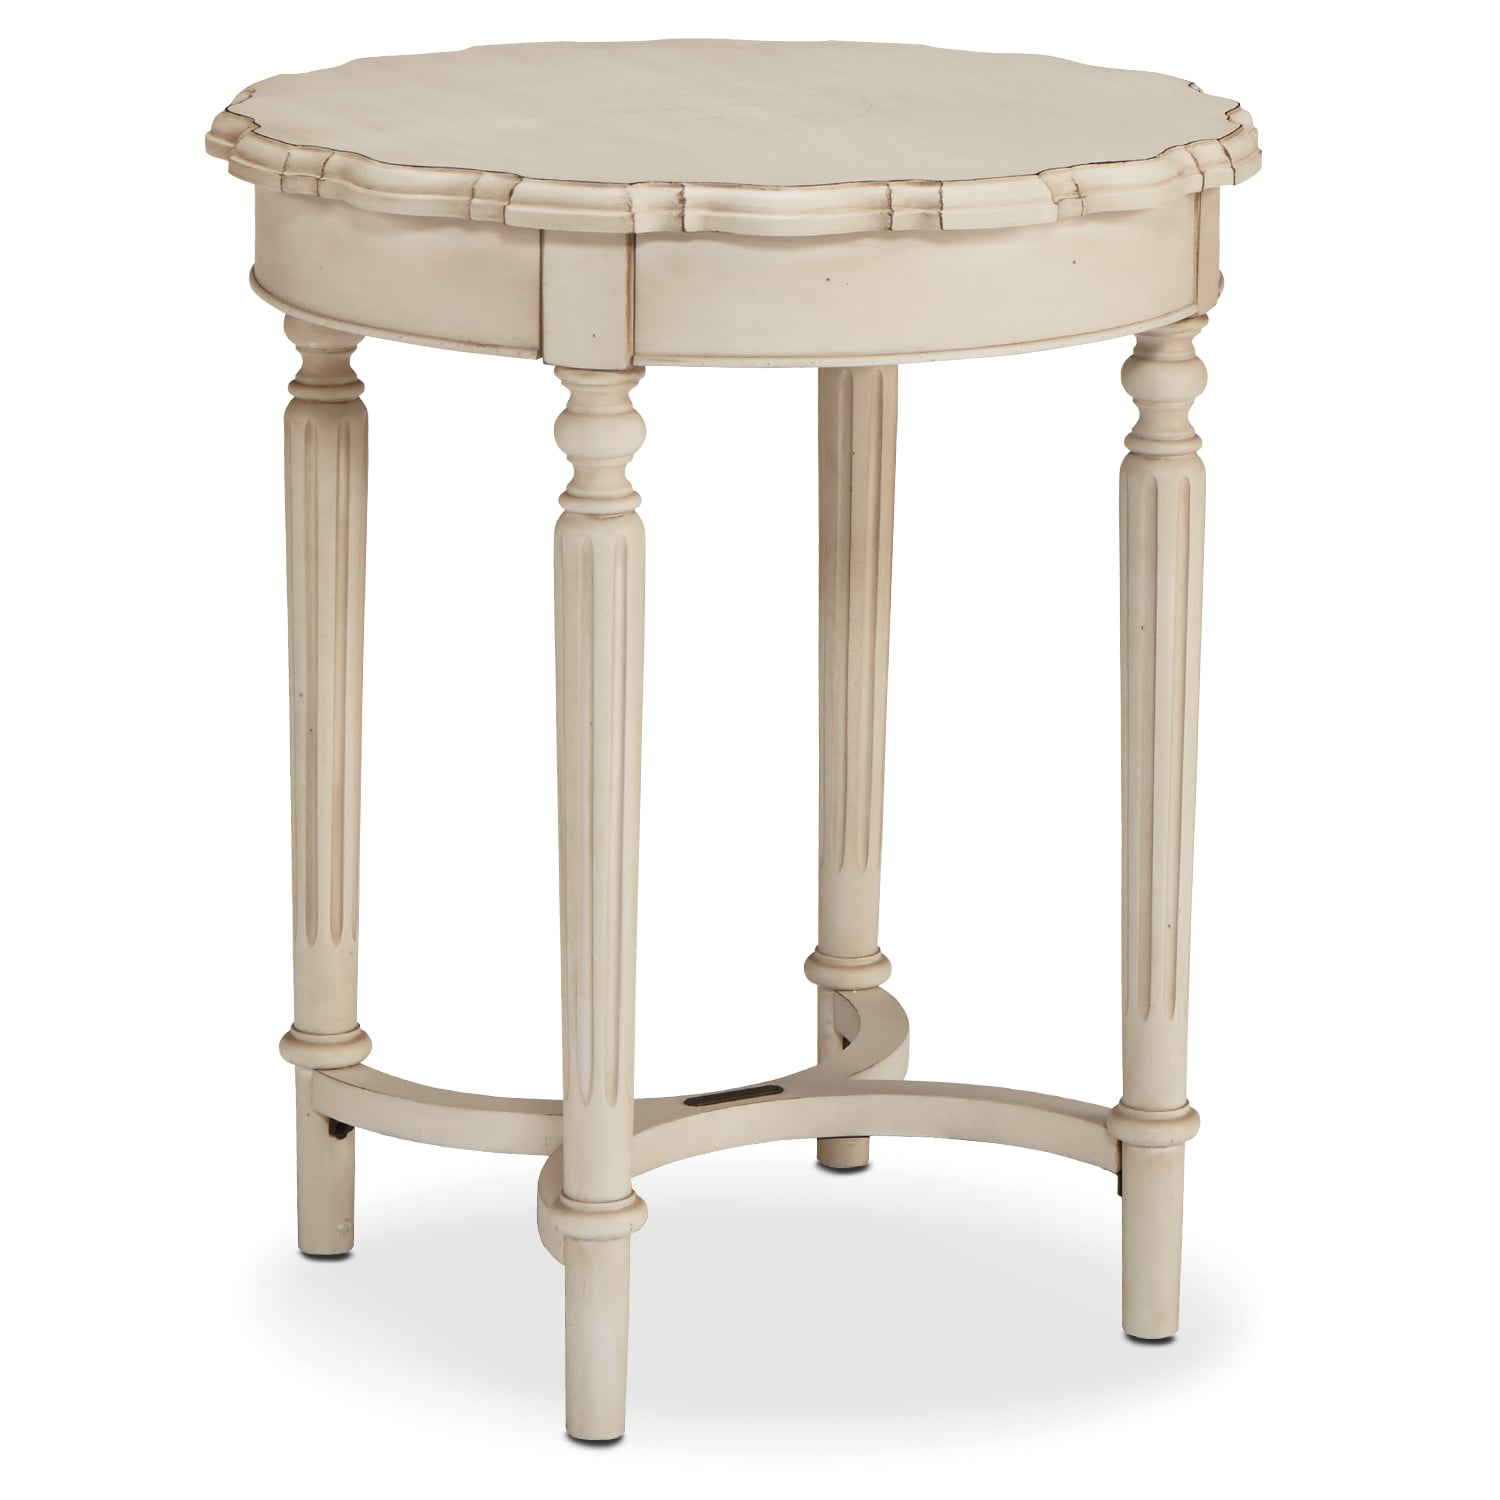 Accent and Occasional Furniture - French Pie Crust Tall Table - Antique White